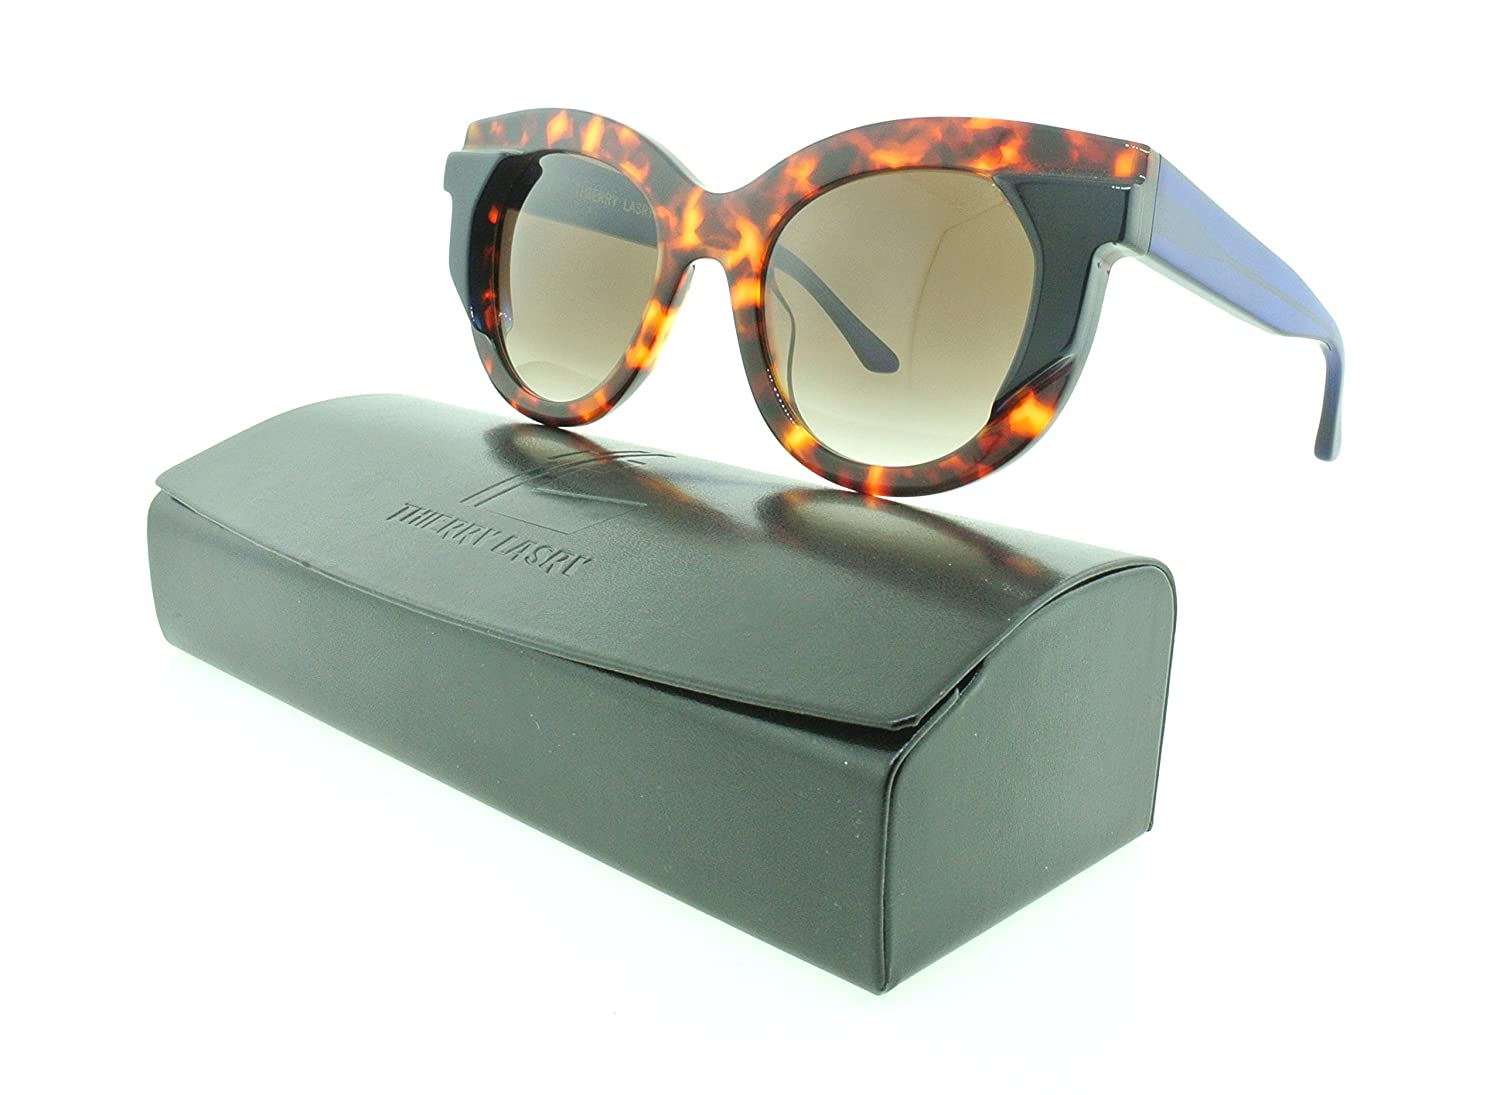 Thierry Lasry レディース B0785G2YXF Clear Multicolor|グレー グラデーション Clear Multicolor